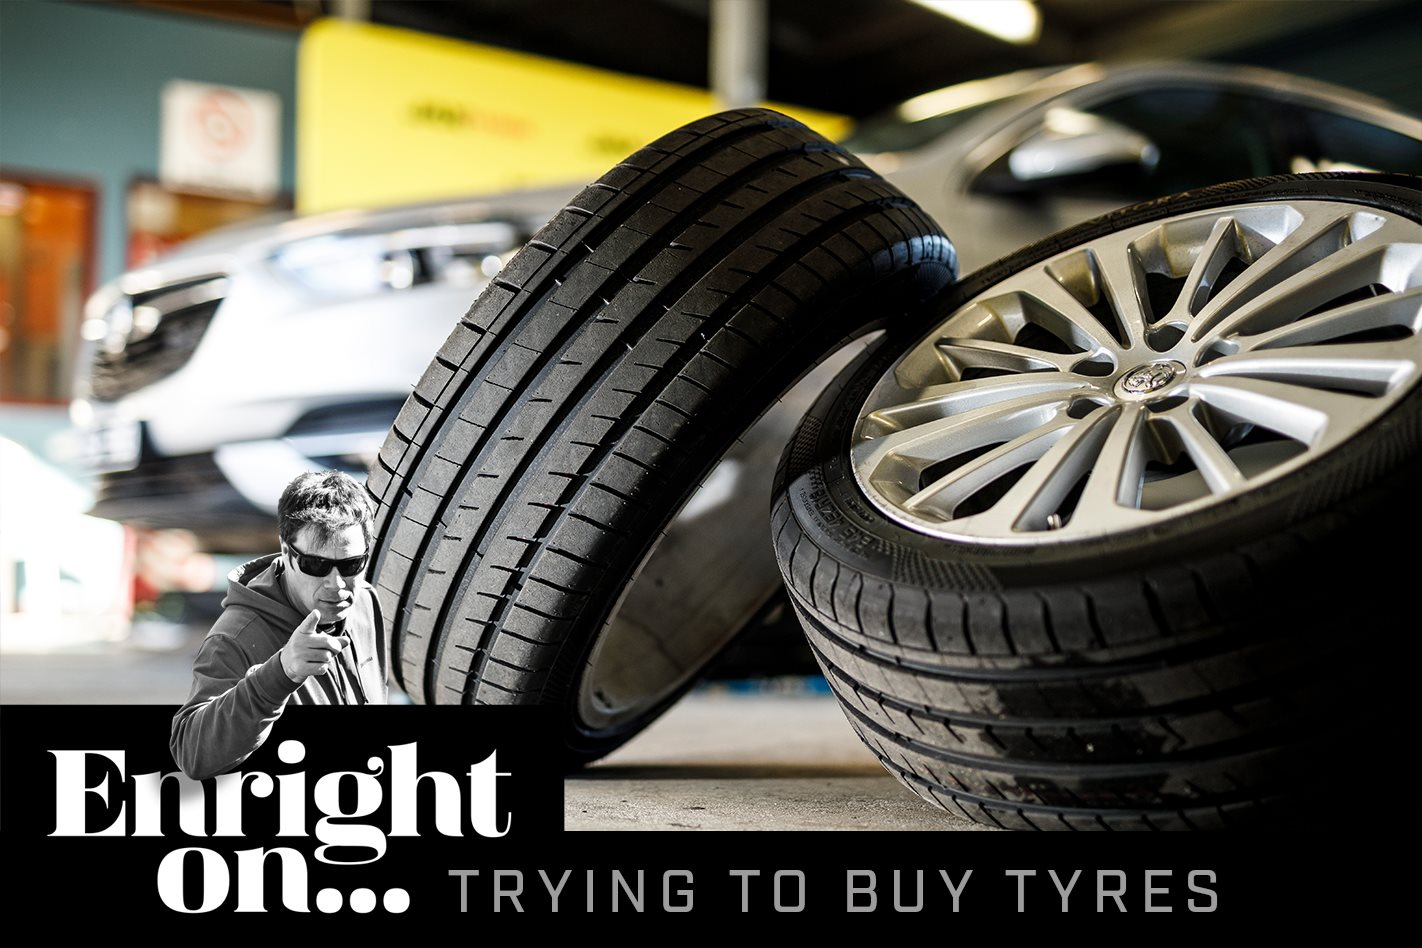 Buying new tyres is infuriating